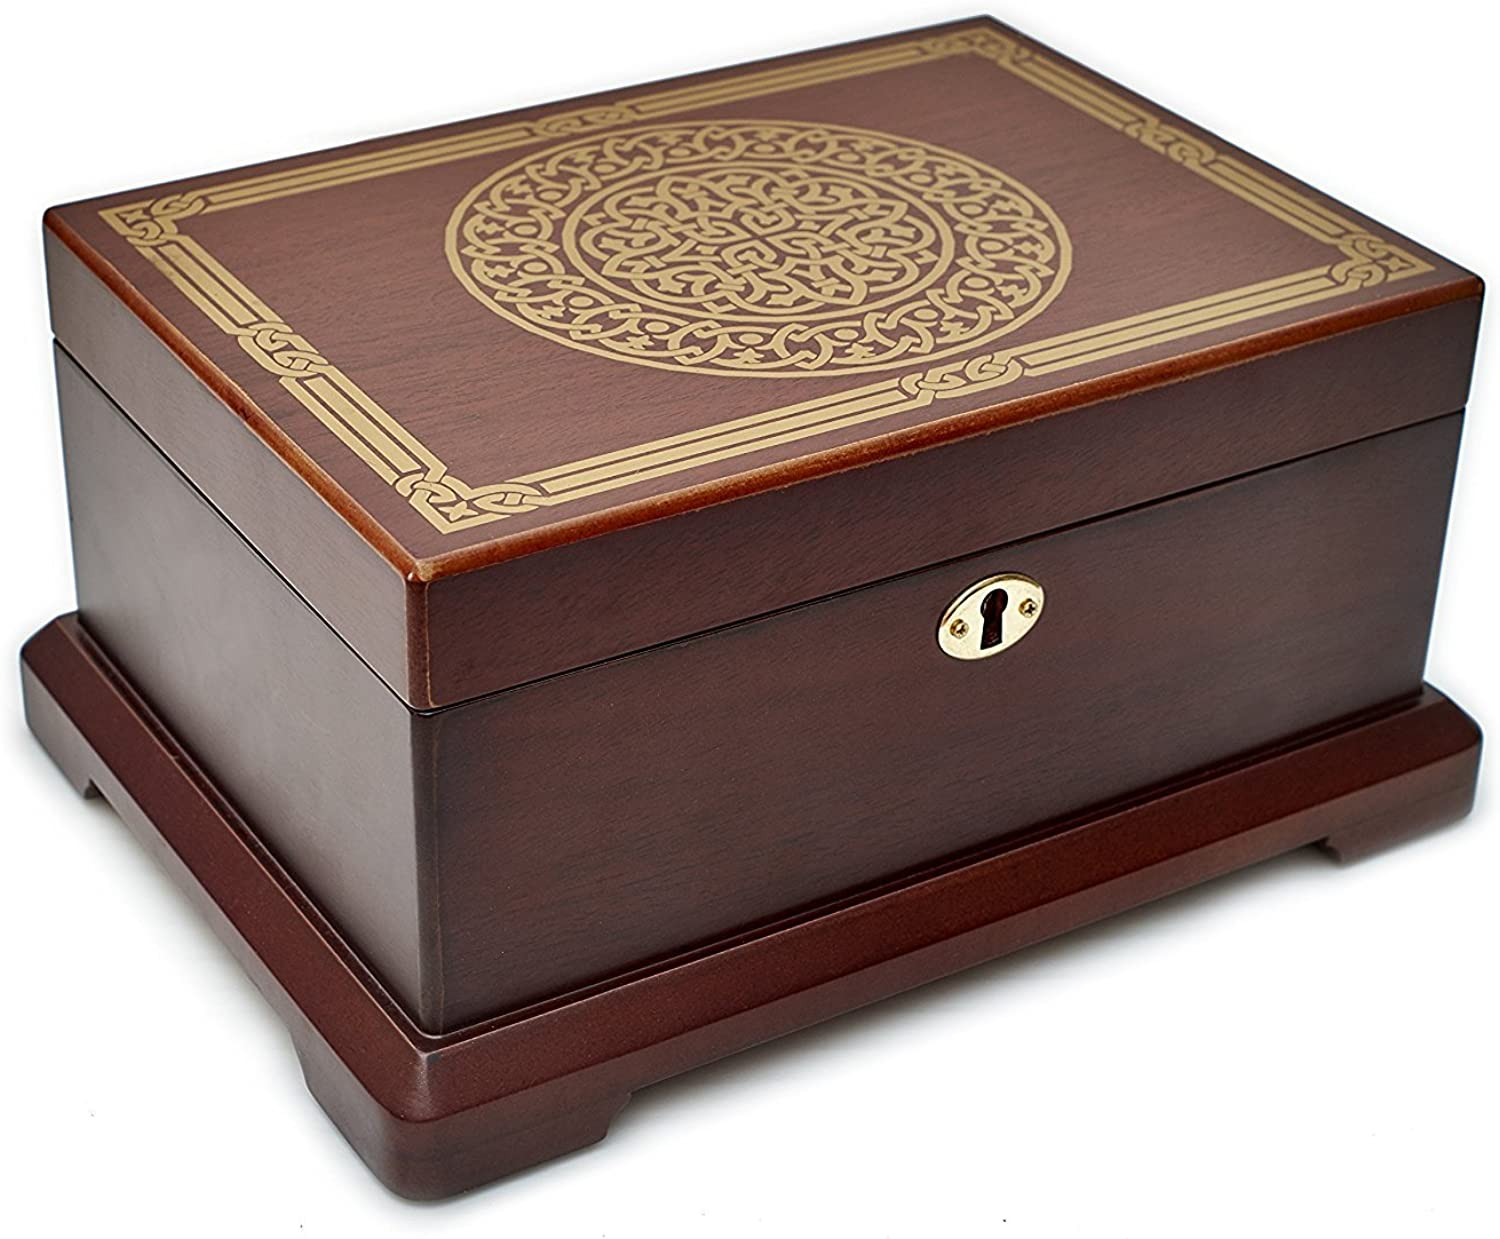 Le Grande Jewelry Box   Unique, High End Antique Wooden Jewelry Case  Holder  Organizer Impeccable Traditional Vintage Design  Ideal Jewelry Storage Container